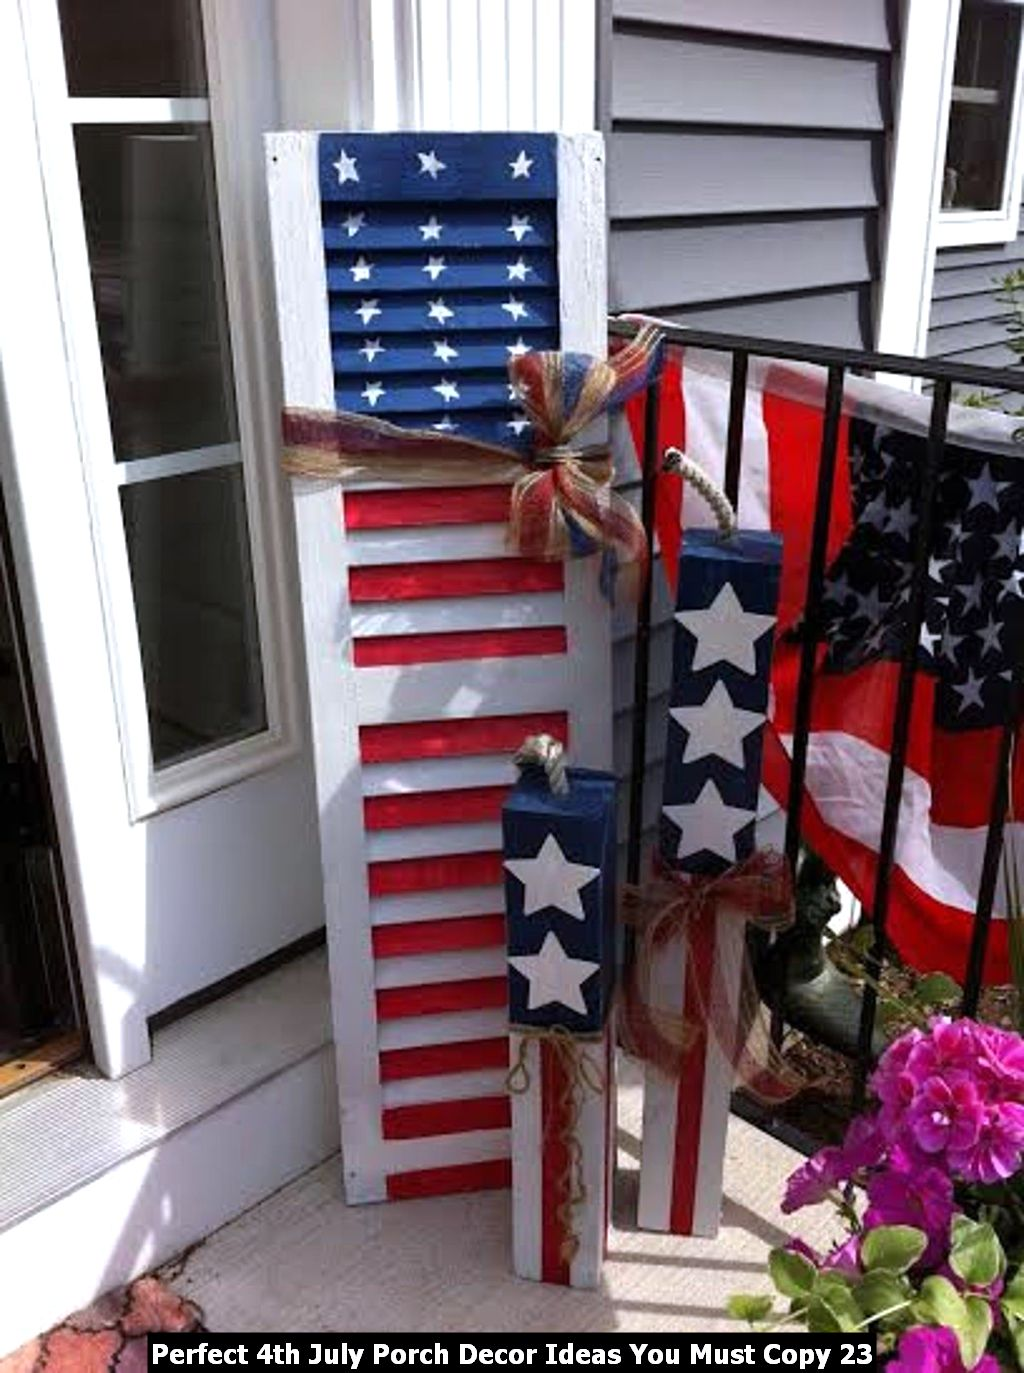 Perfect 4th July Porch Decor Ideas You Must Copy 23